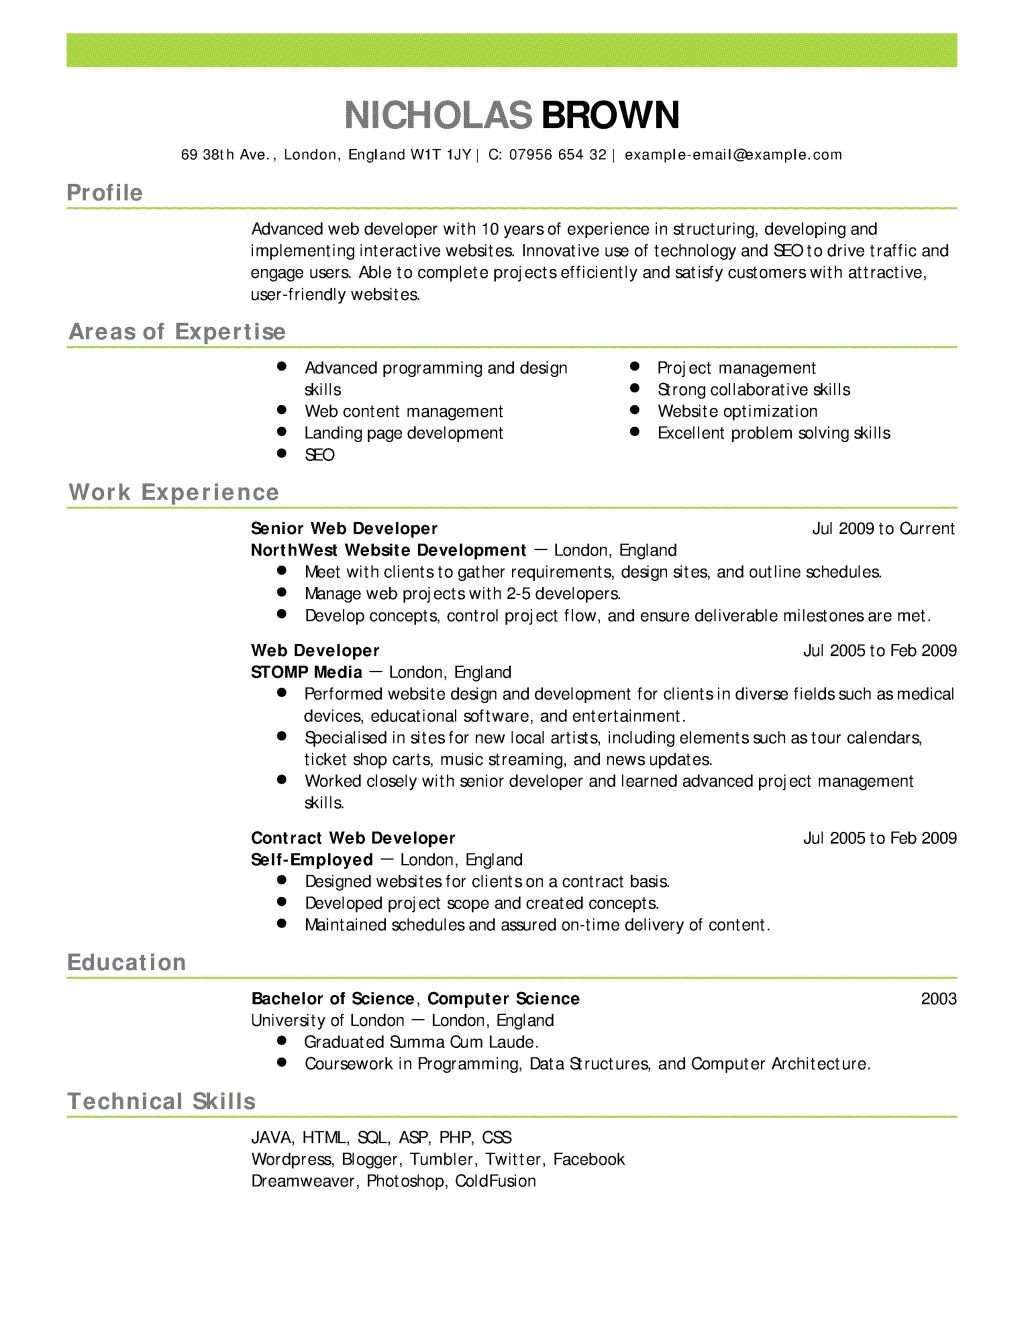 ramit sethi resume template example-Ramit Sethi Resume Luxury Ramit Sethi Resume Free Resume Templates Word Ramit Sethi Resume Beautiful 8-o